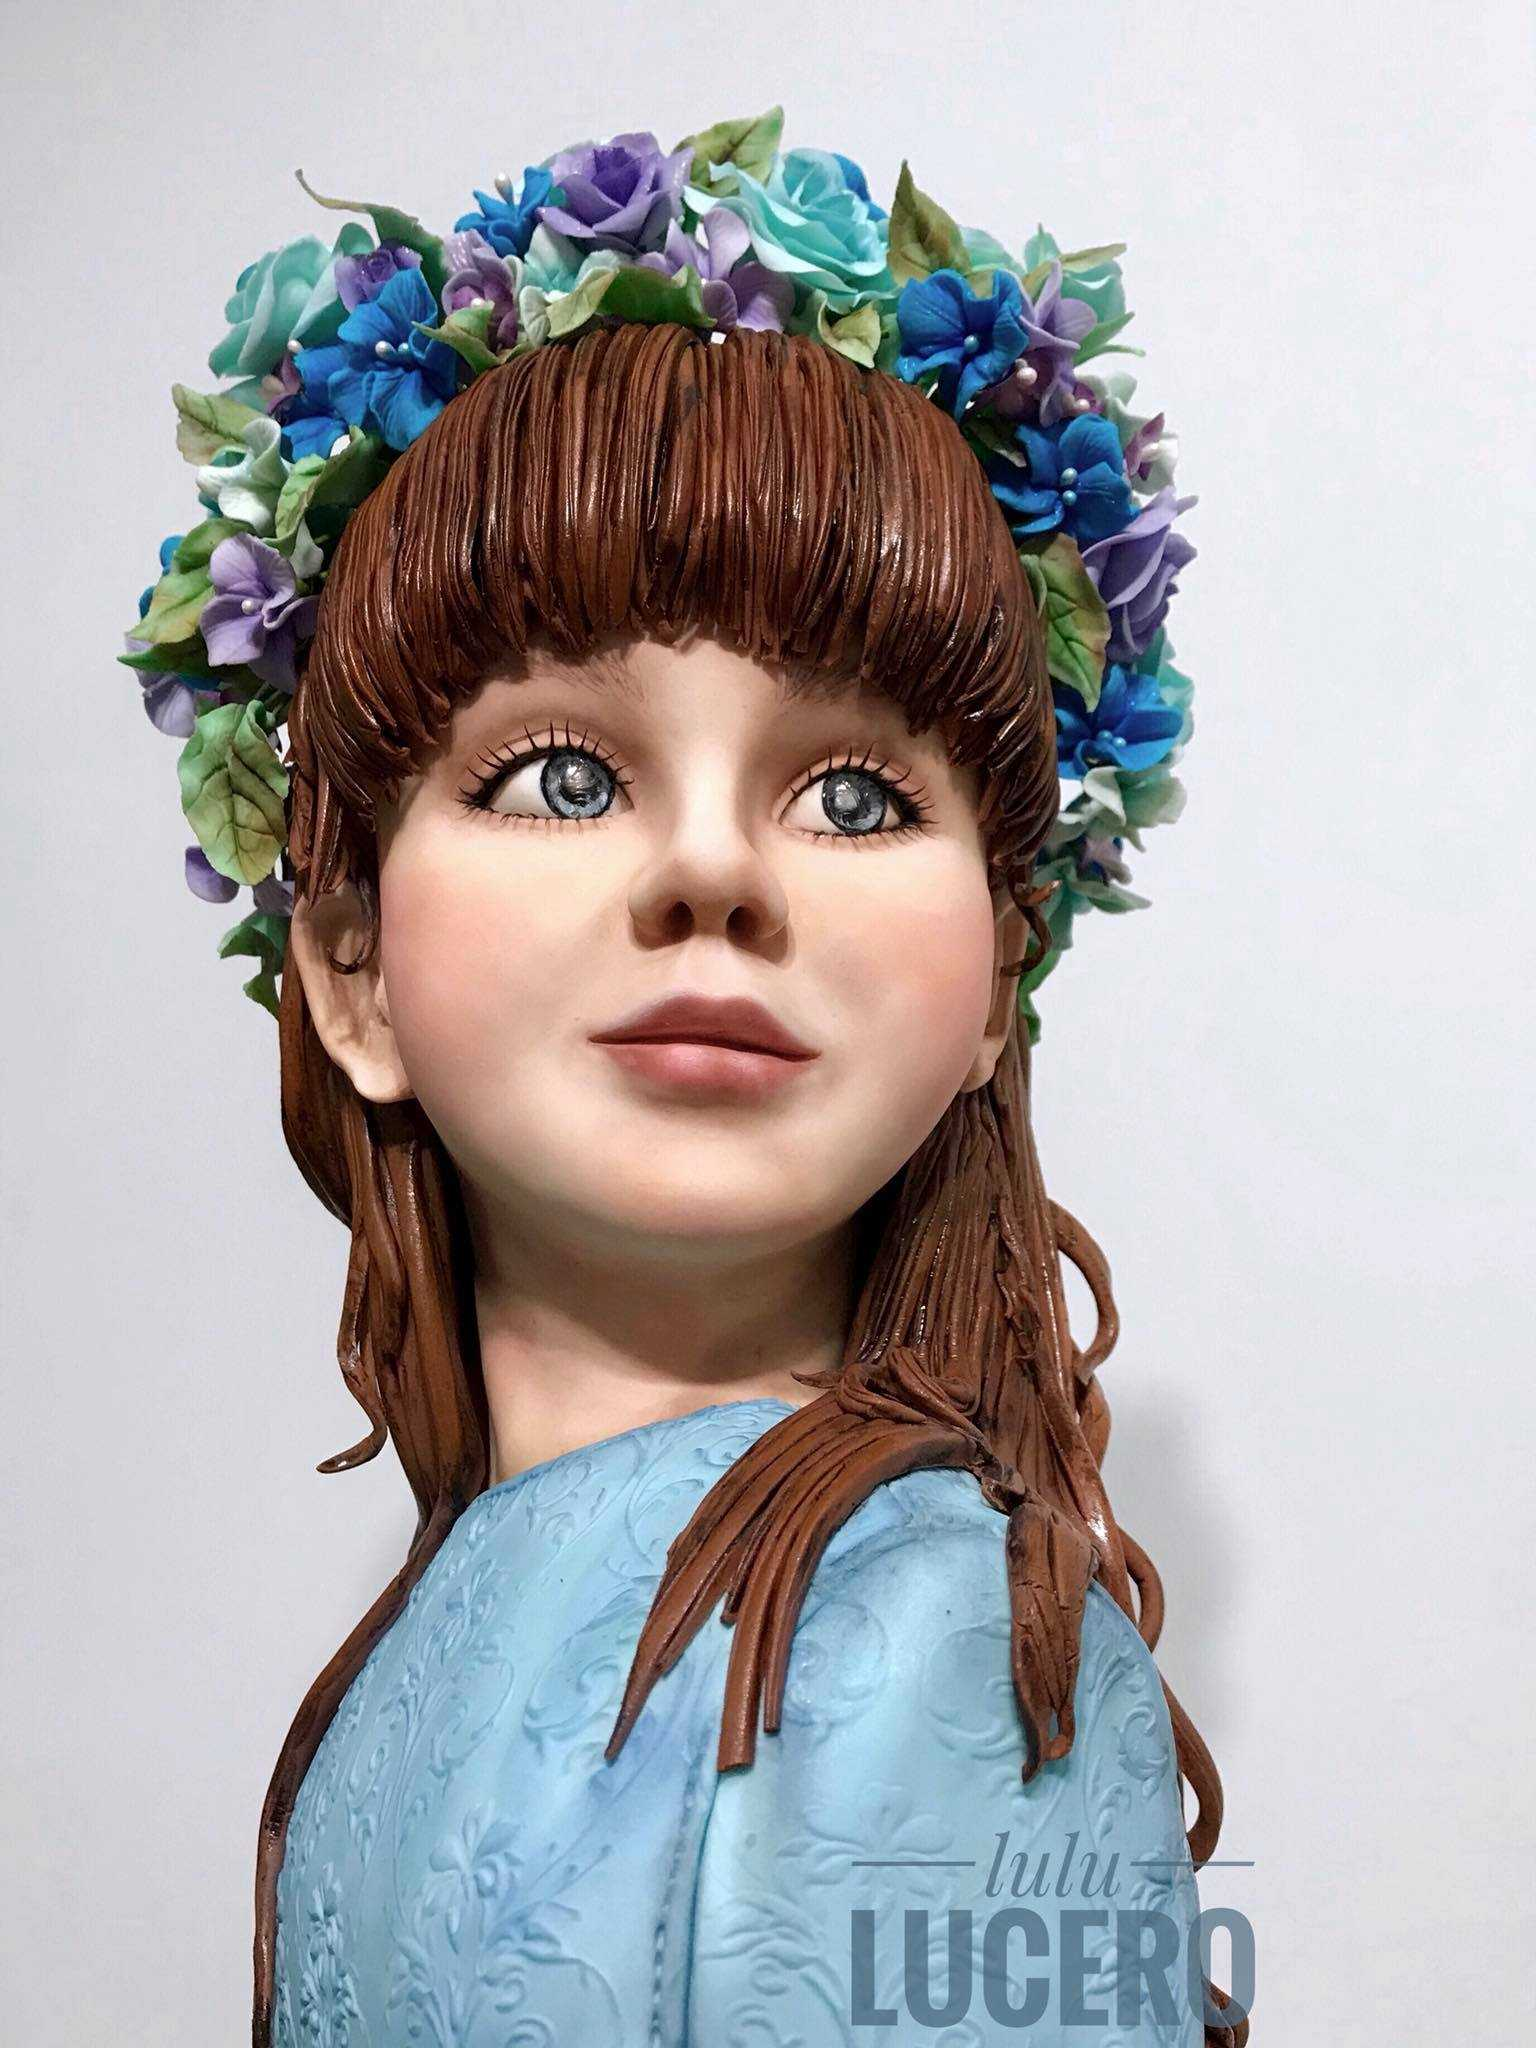 Sculpted young girl with floral wreath bust cake